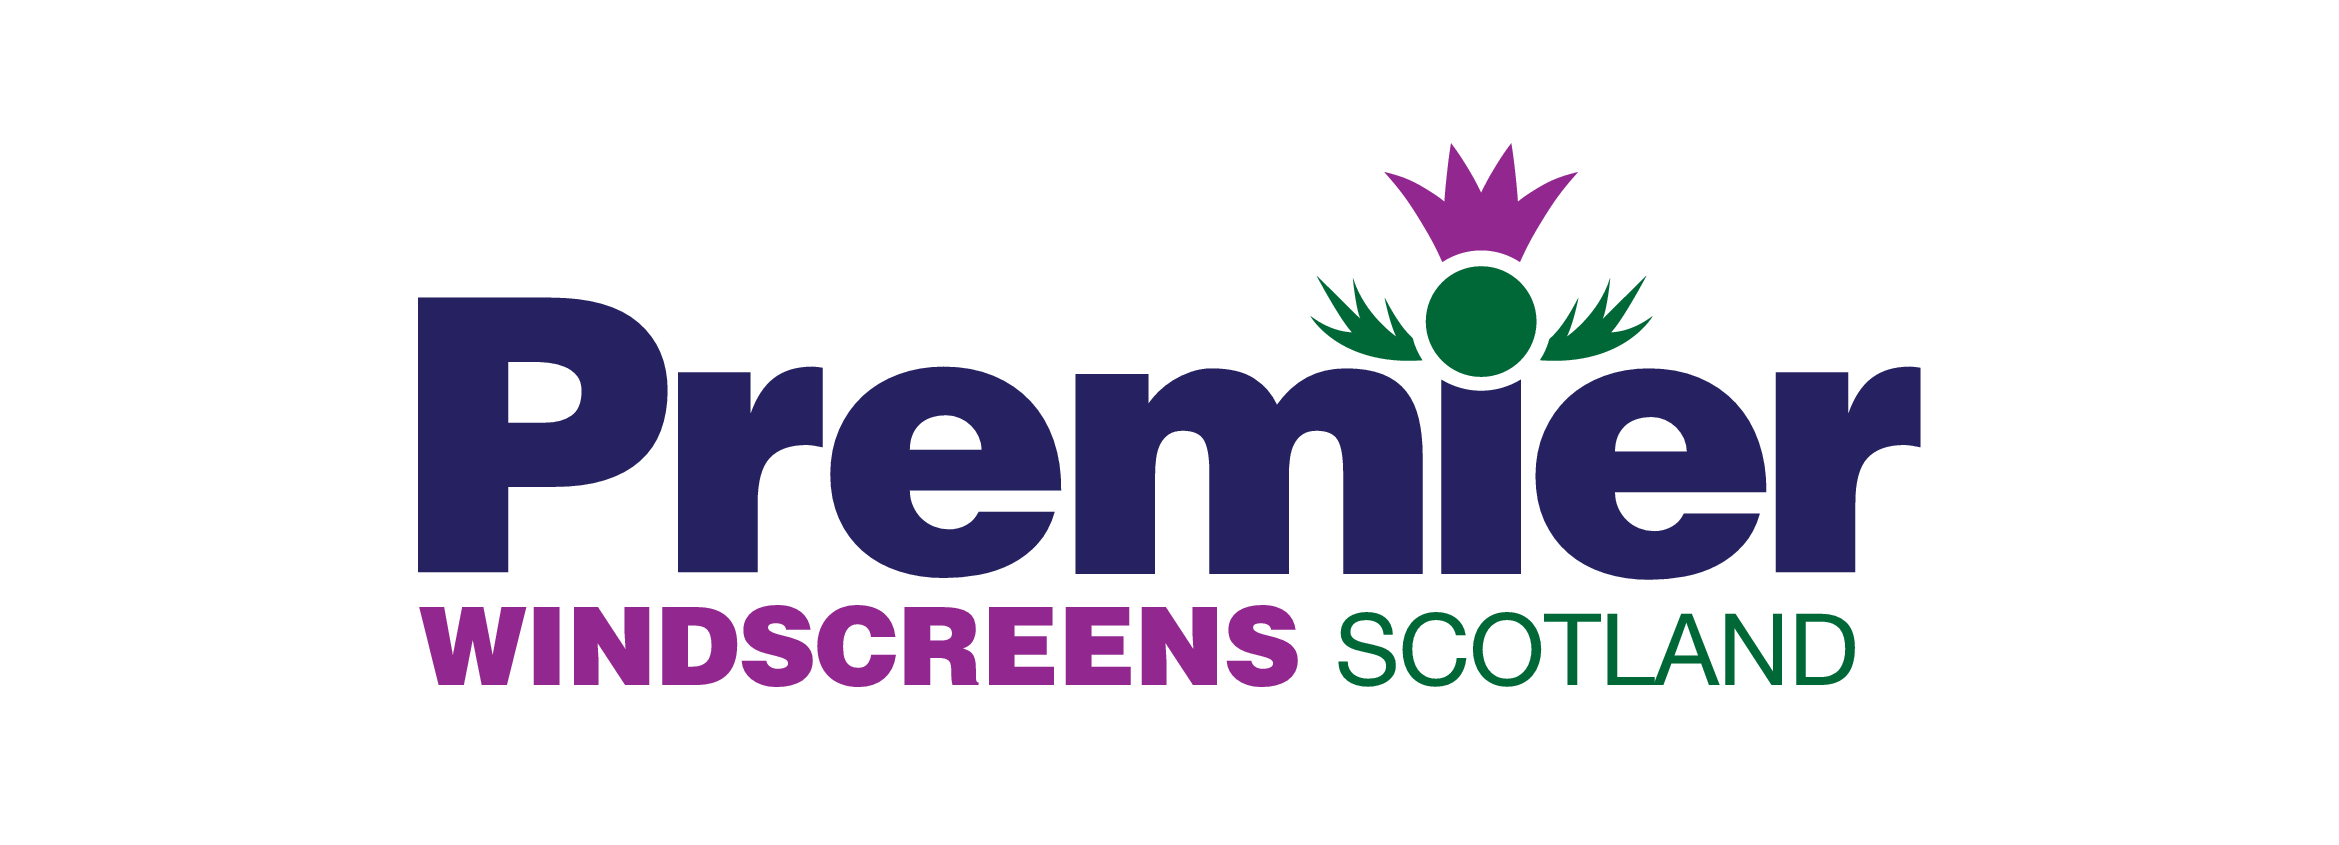 Premier Windscreens Scotland - Damaged Windscreen and Replacement Experts